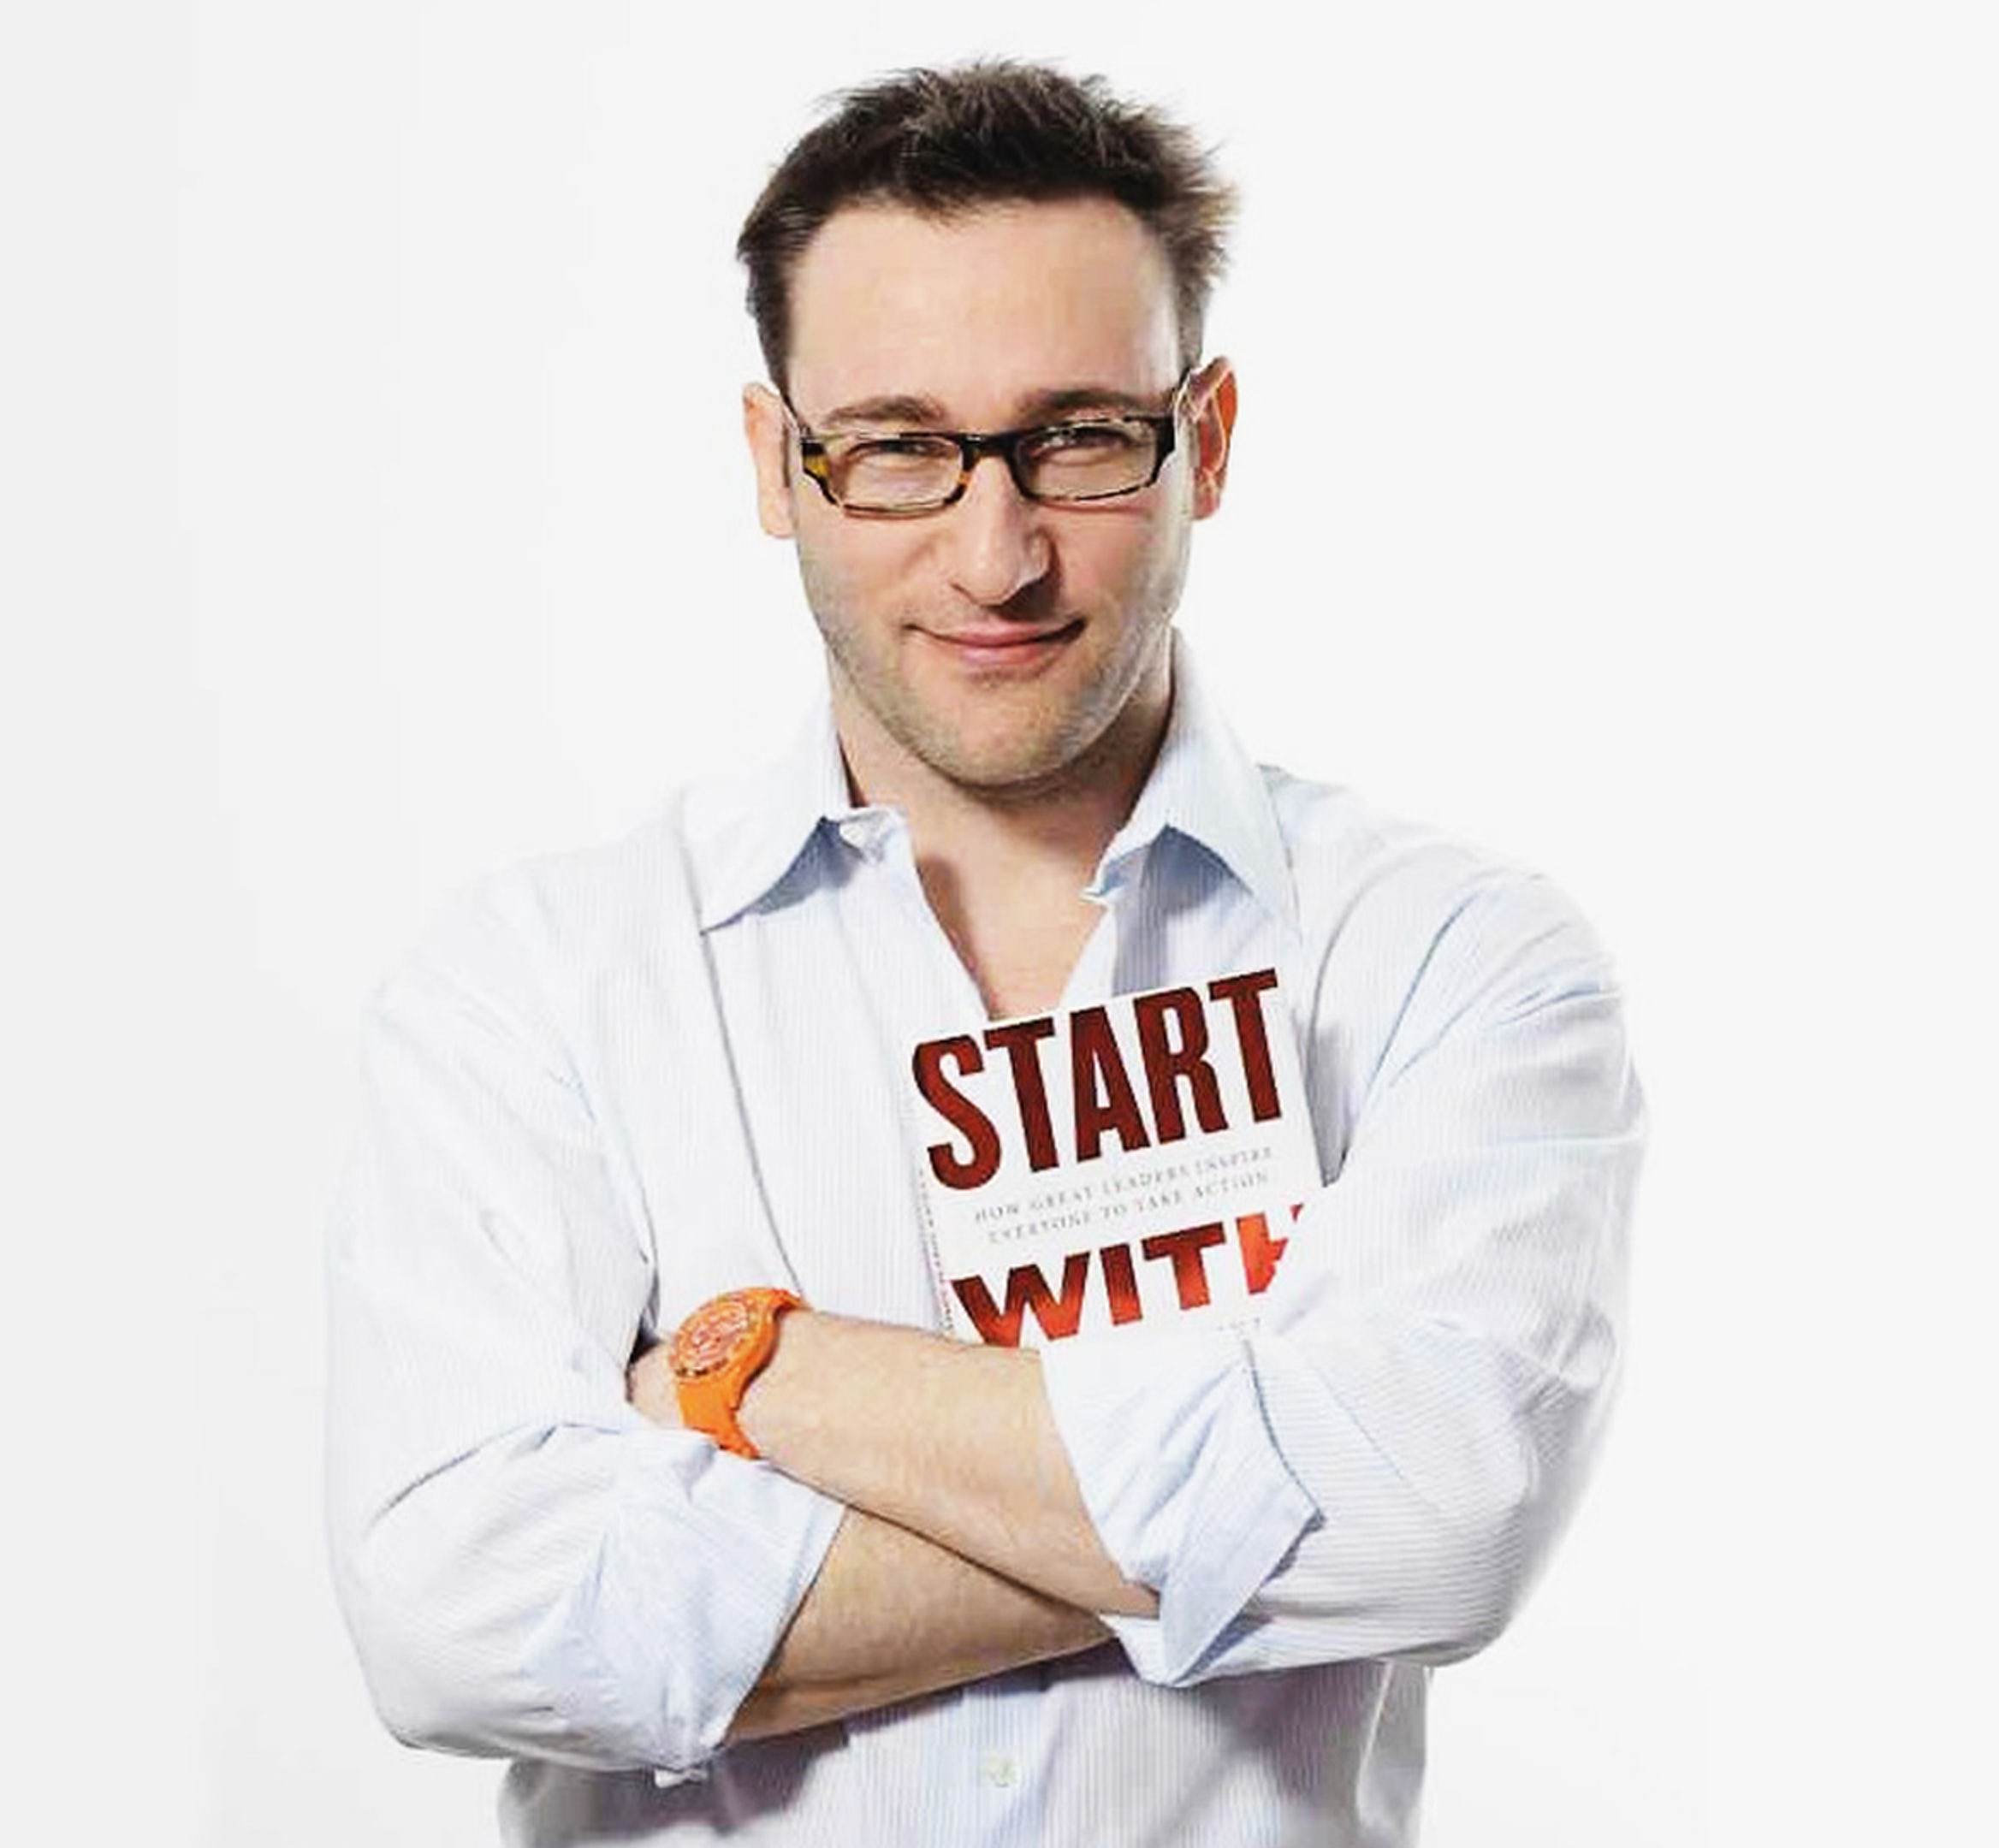 Simon Sinek Why book desktop